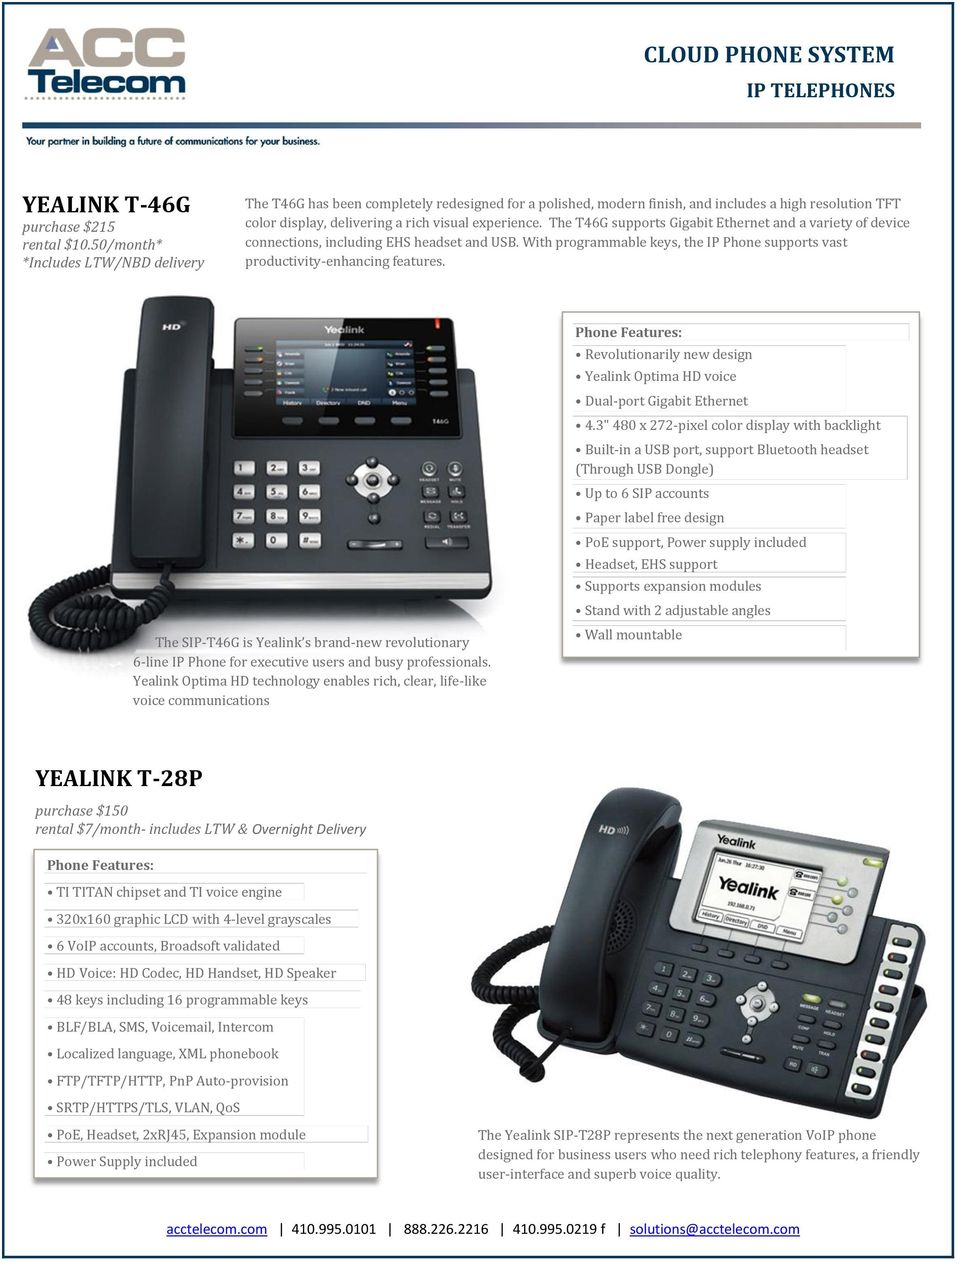 The T46G supports Gigabit Ethernet and a variety of device connections, including EHS headset and USB. With programmable keys, the IP Phone supports vast productivity-enhancing features.